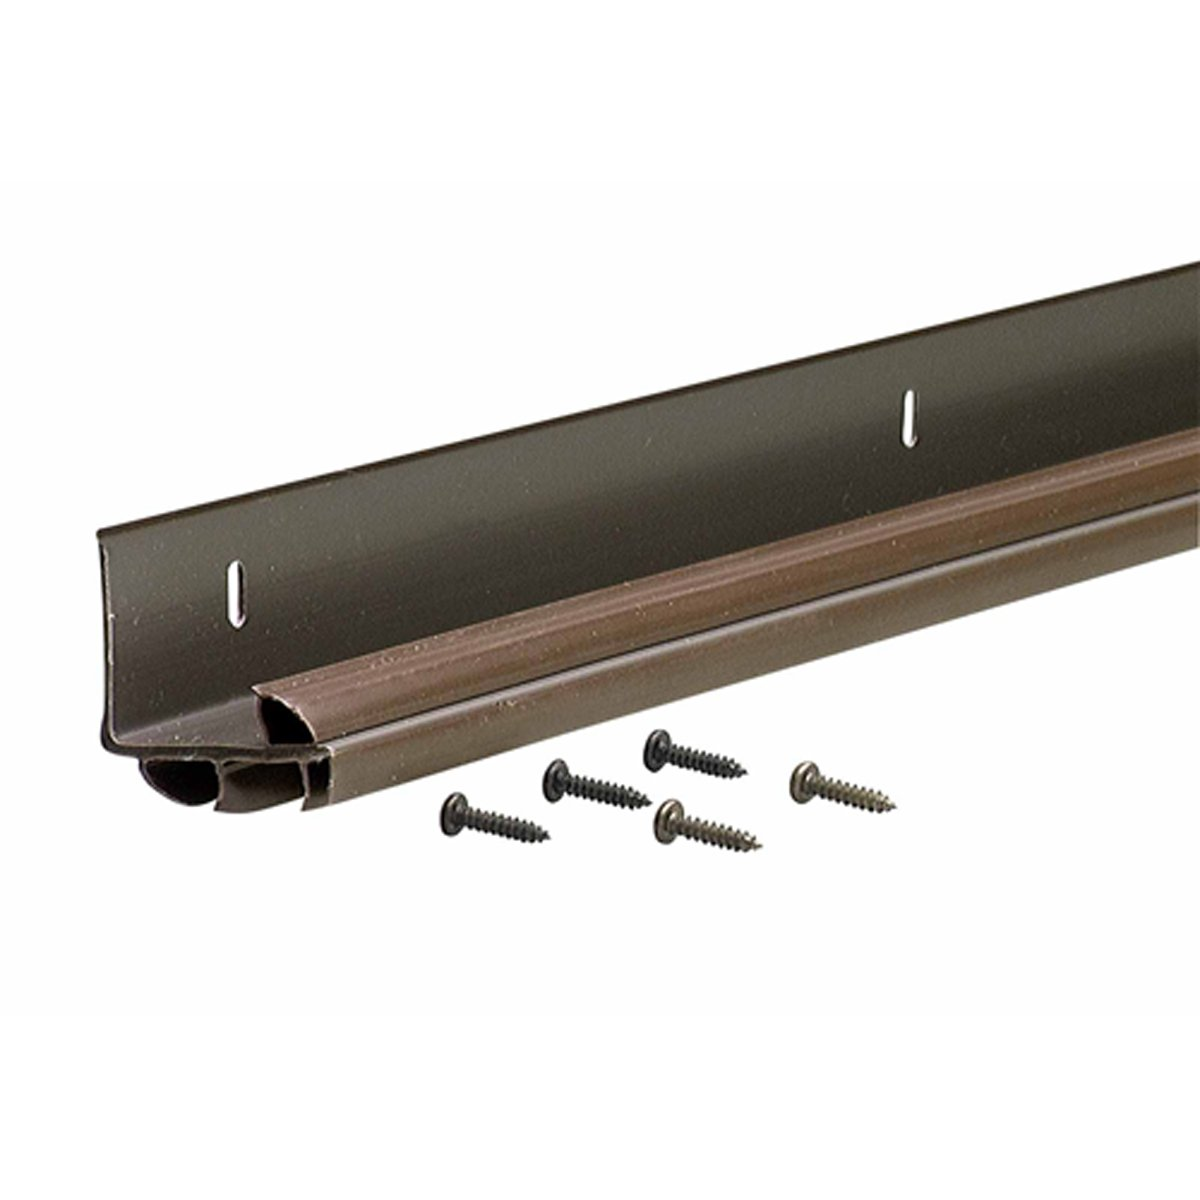 M-D Building Products 82578 36-Inch L-Shaped Replacement Door Bottom with Vinyl Fins, Brown